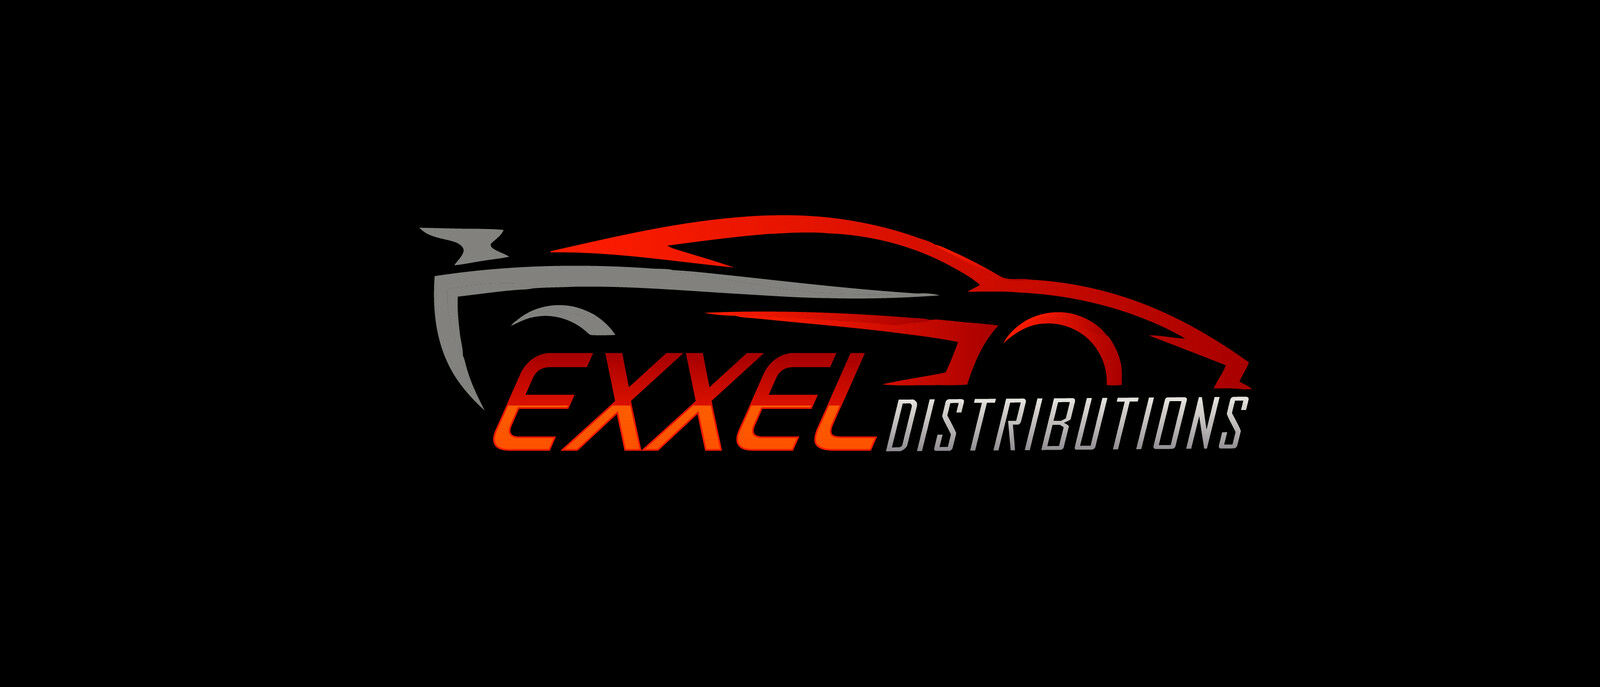 Exxel Distributions